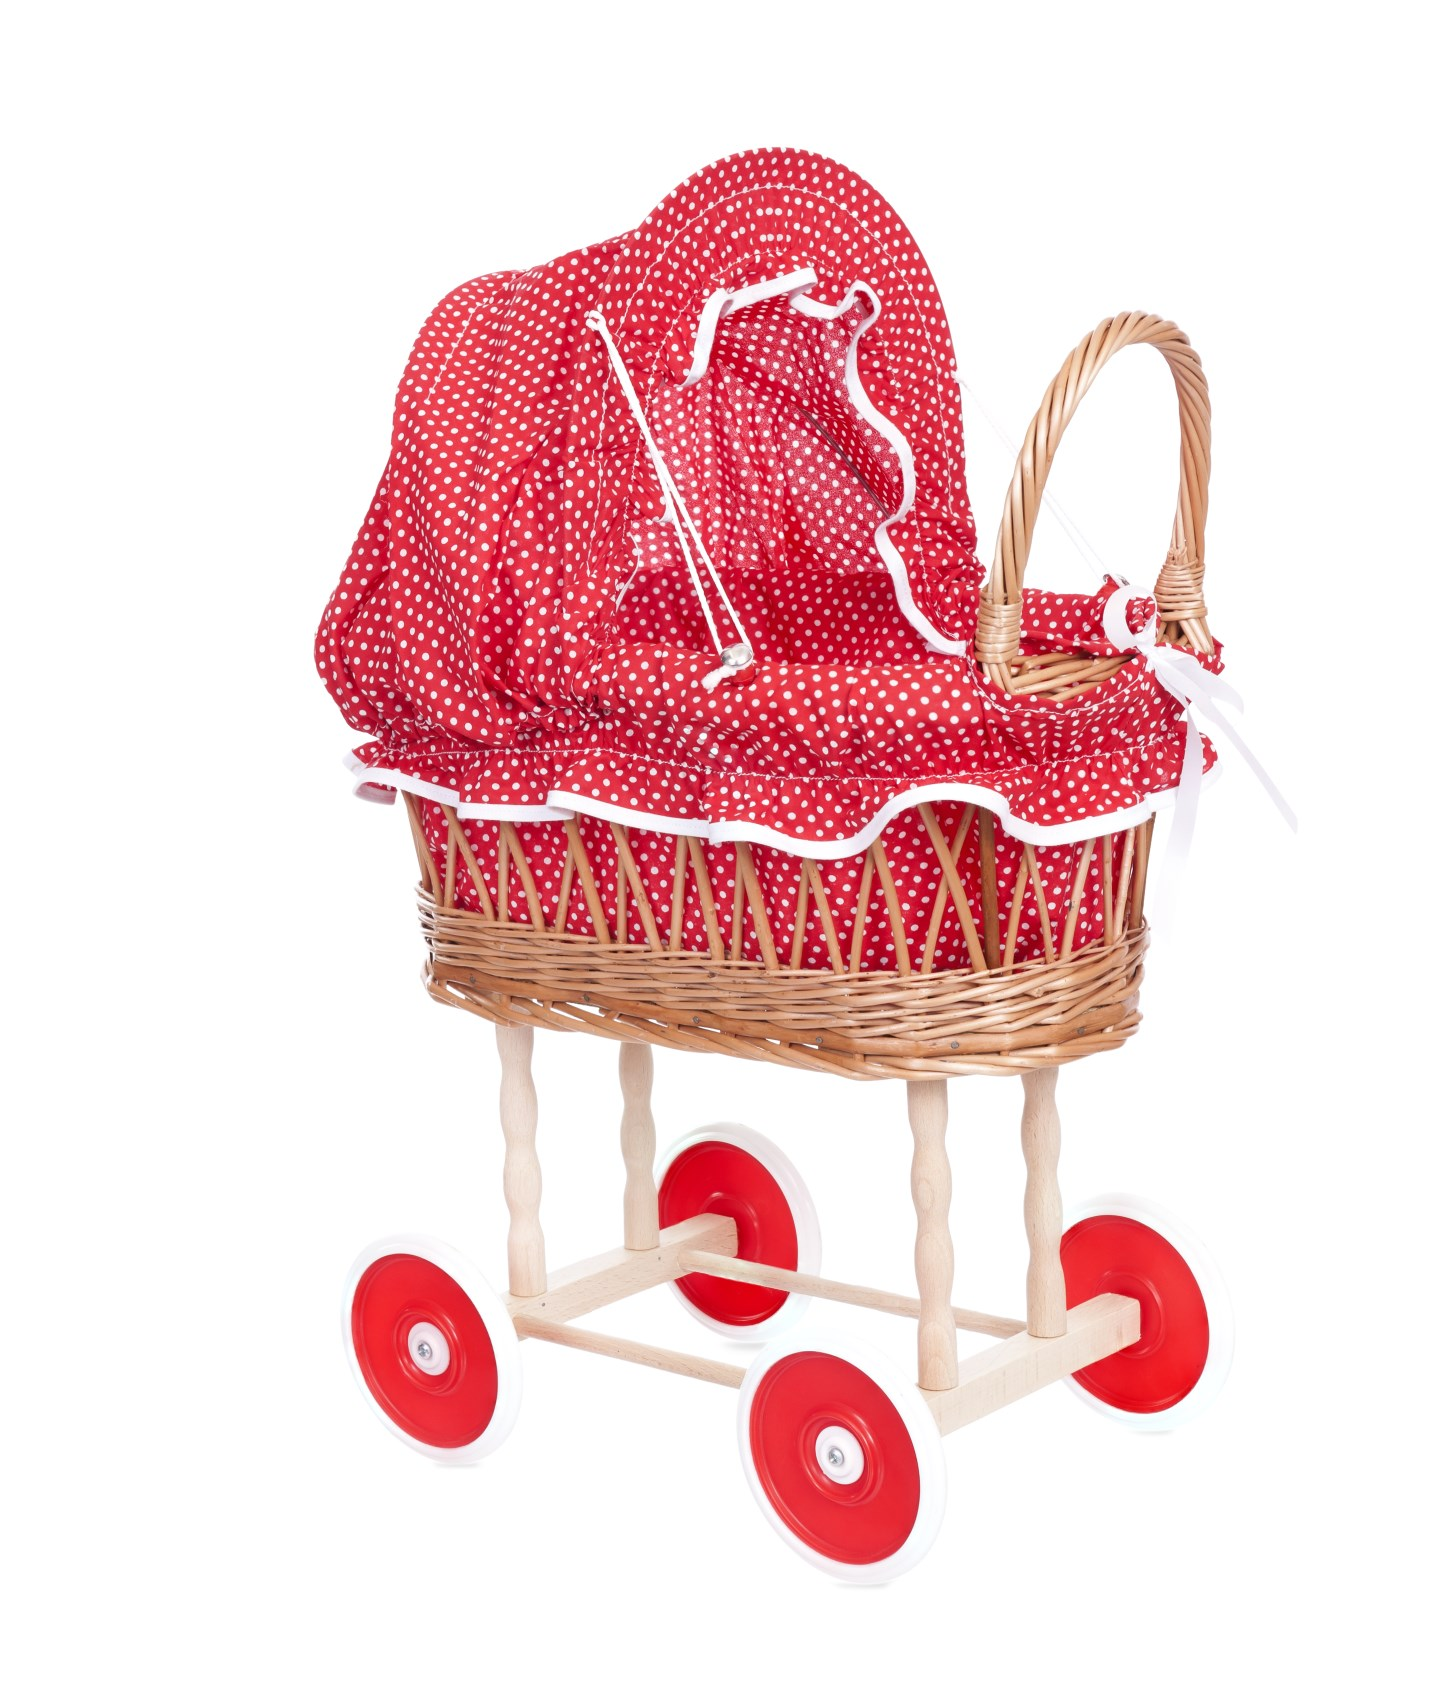 WICKER PRAM, RED & WHITE DOTS. 520058